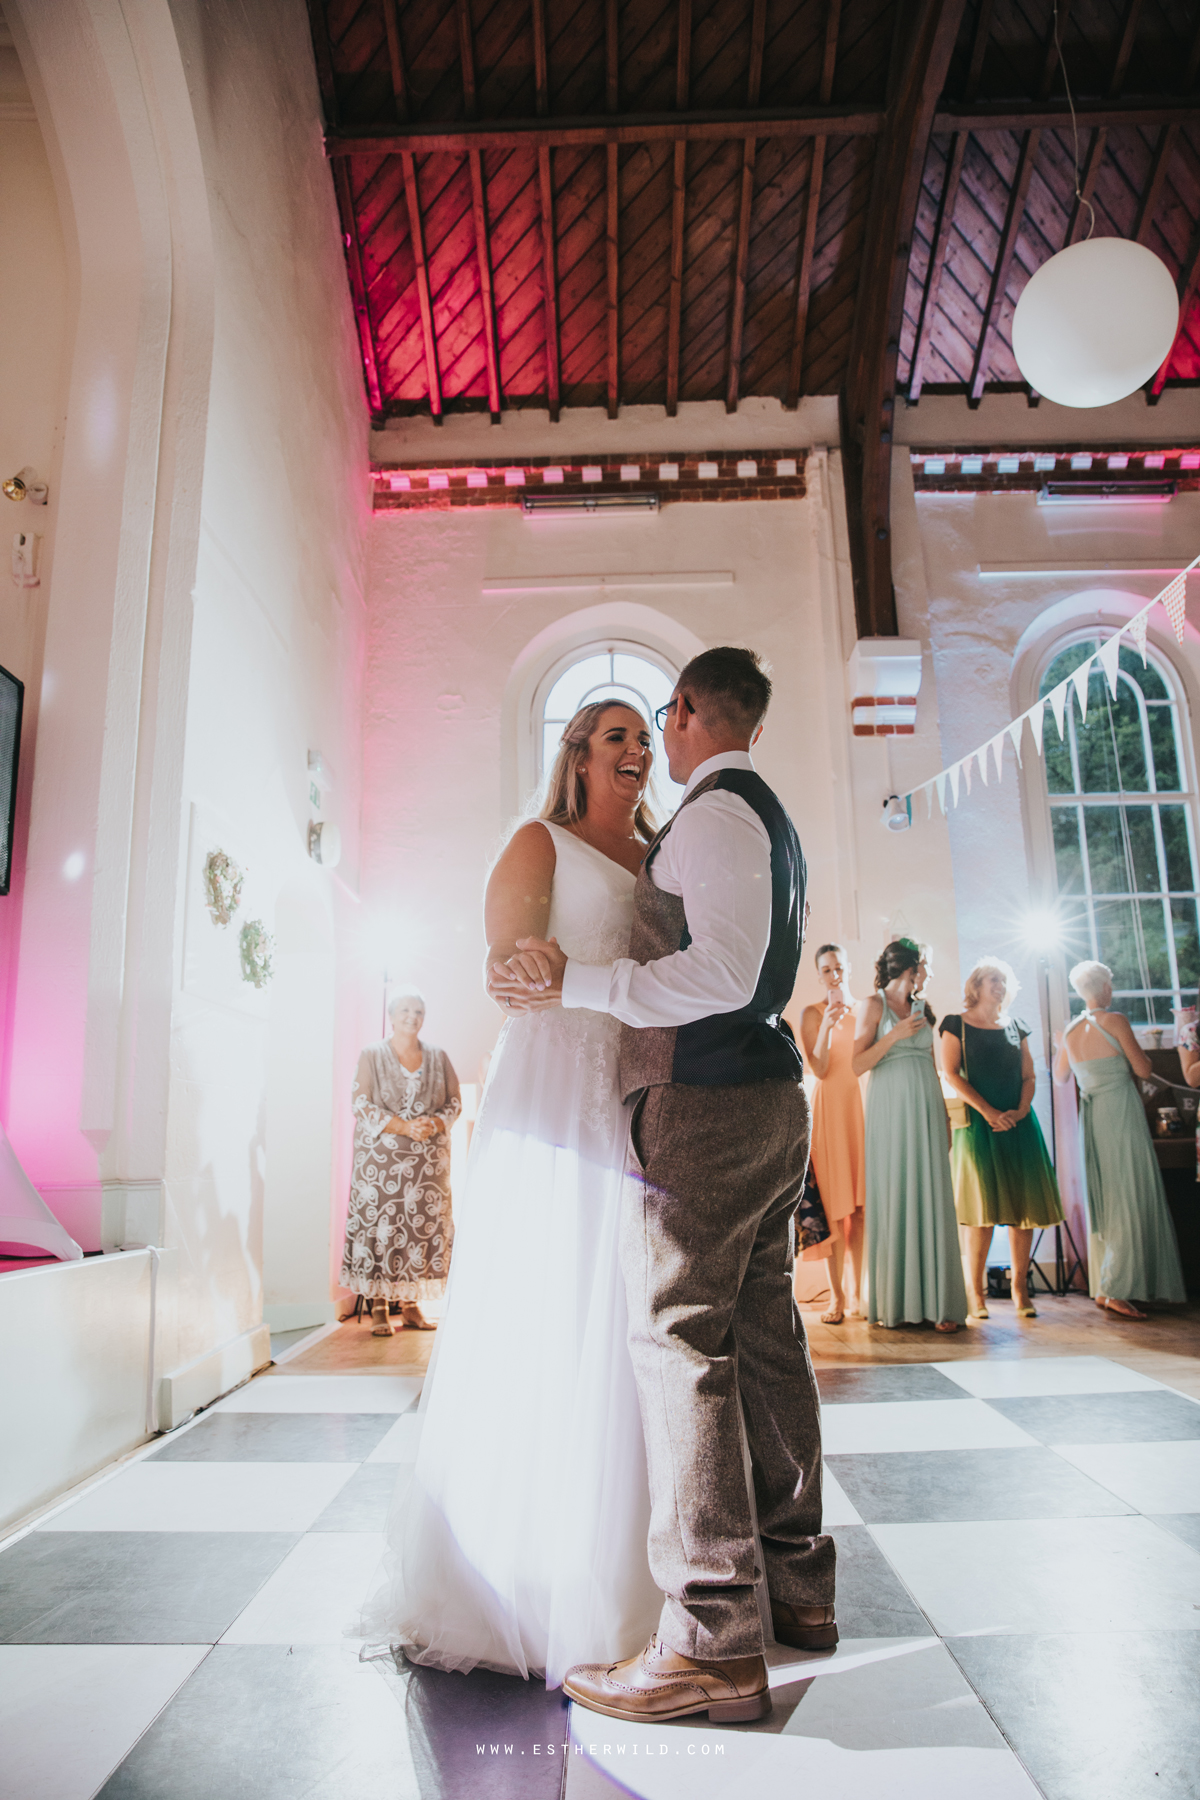 Swaffham_Wedding_Castle_Acre_Norfolk_Esther_Wild_Photographer_Wedding_Photography_3R8A2277.jpg